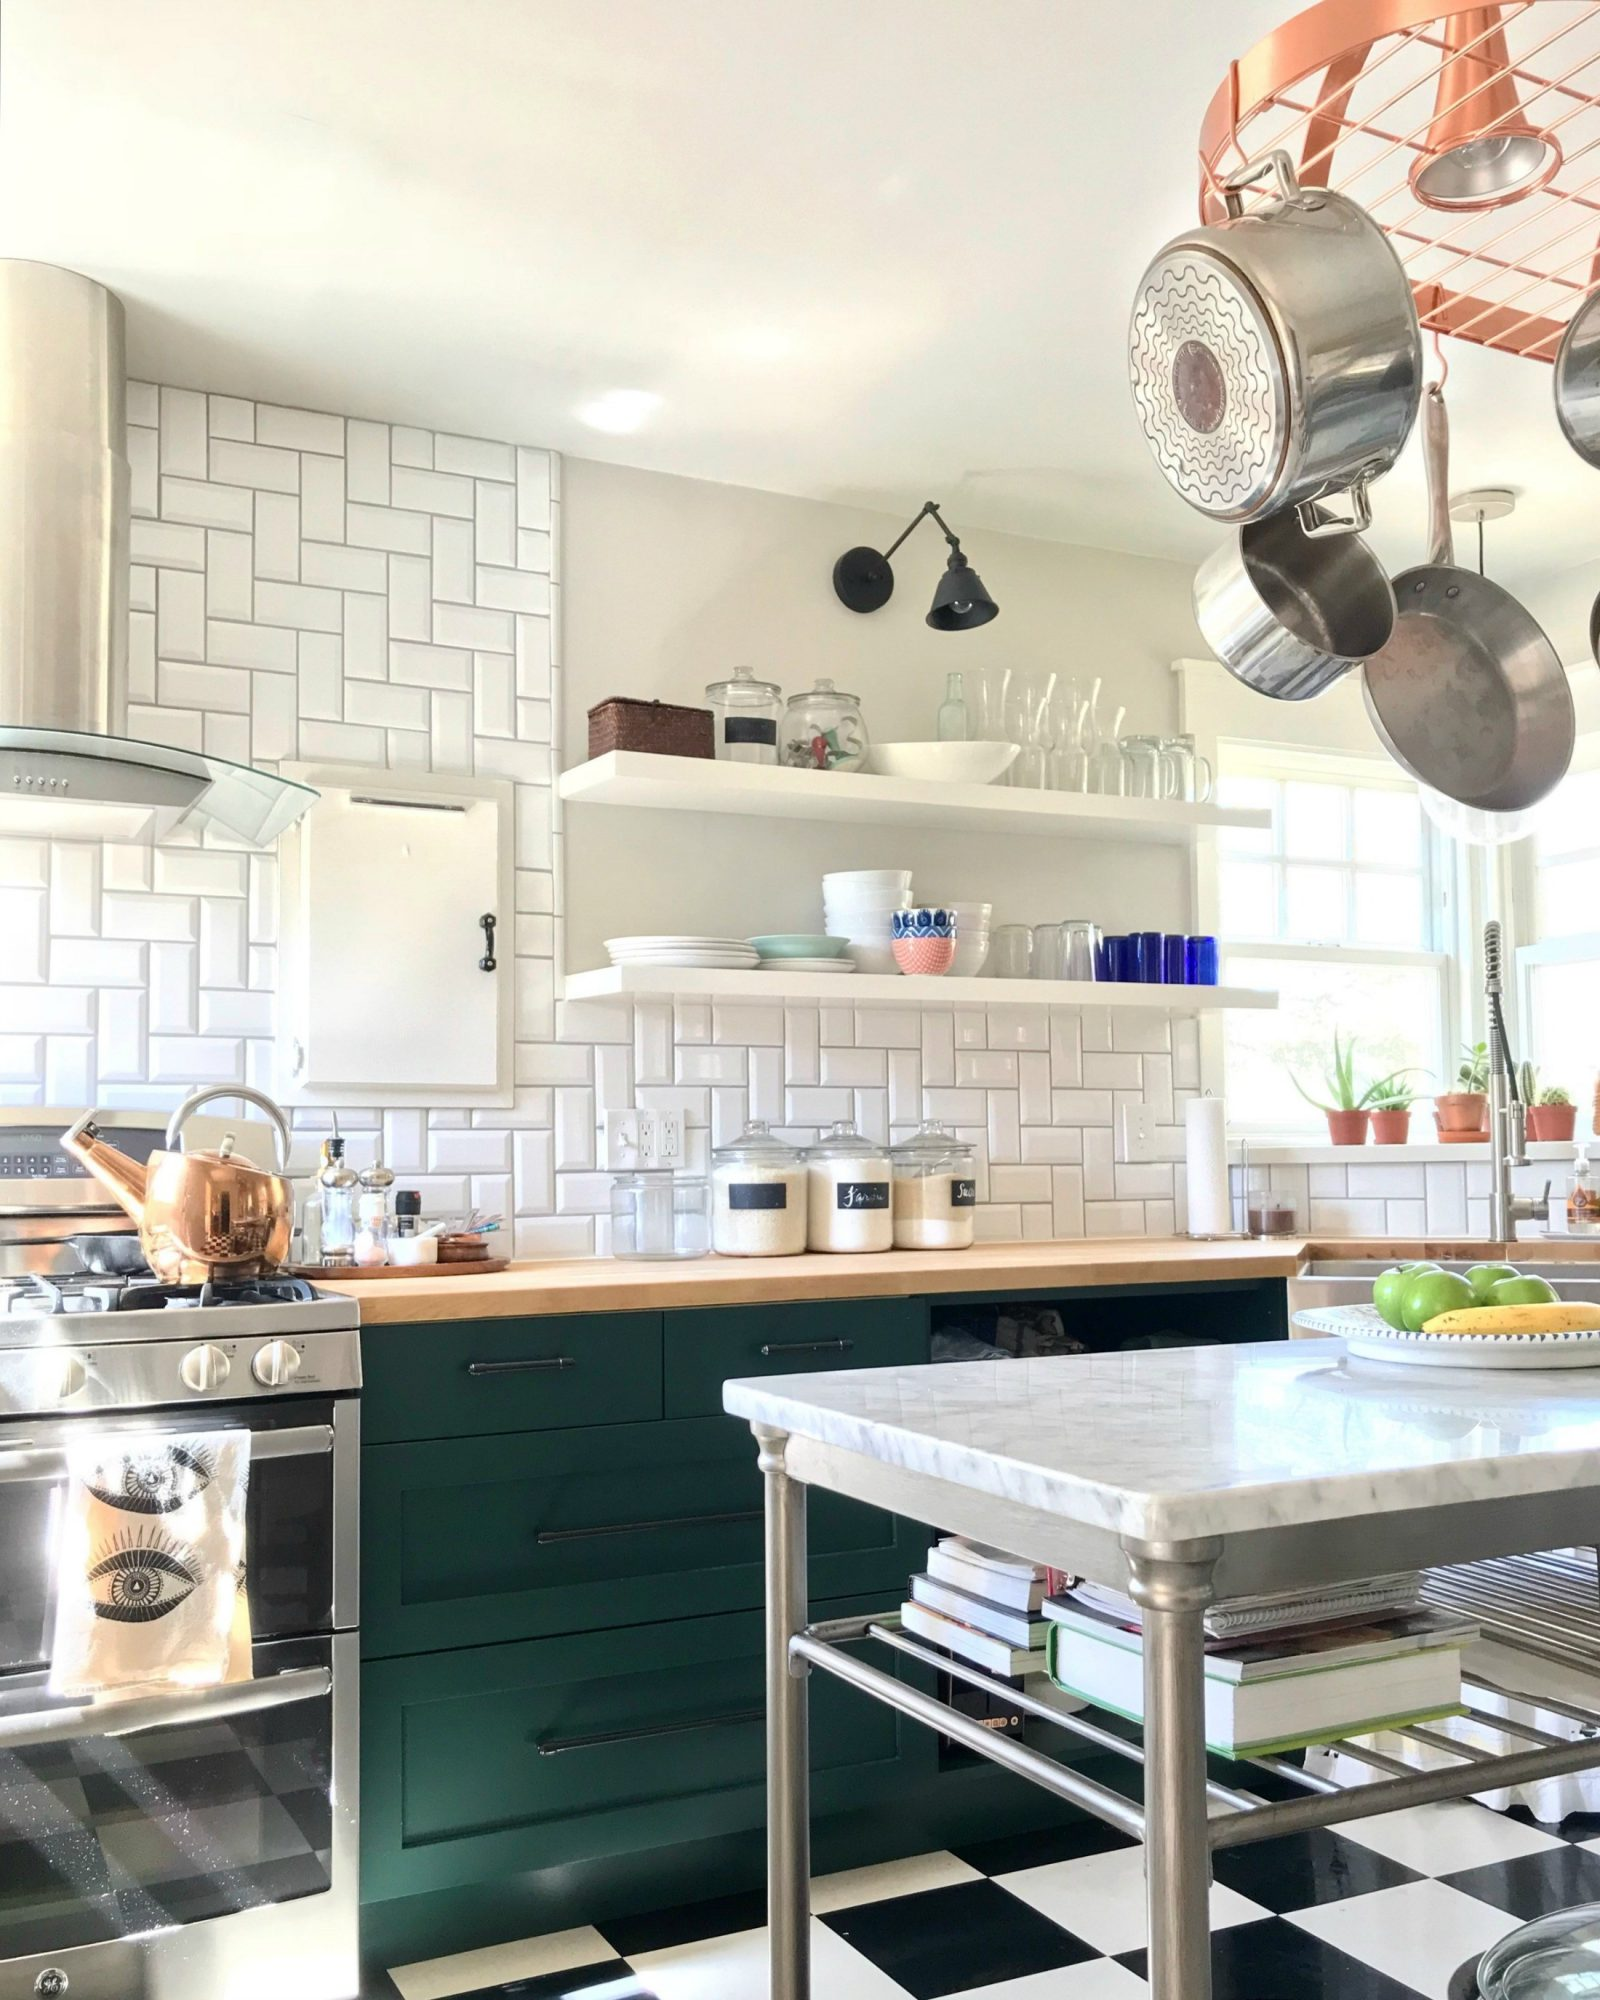 green lower kitchen cabinet with open shelving above